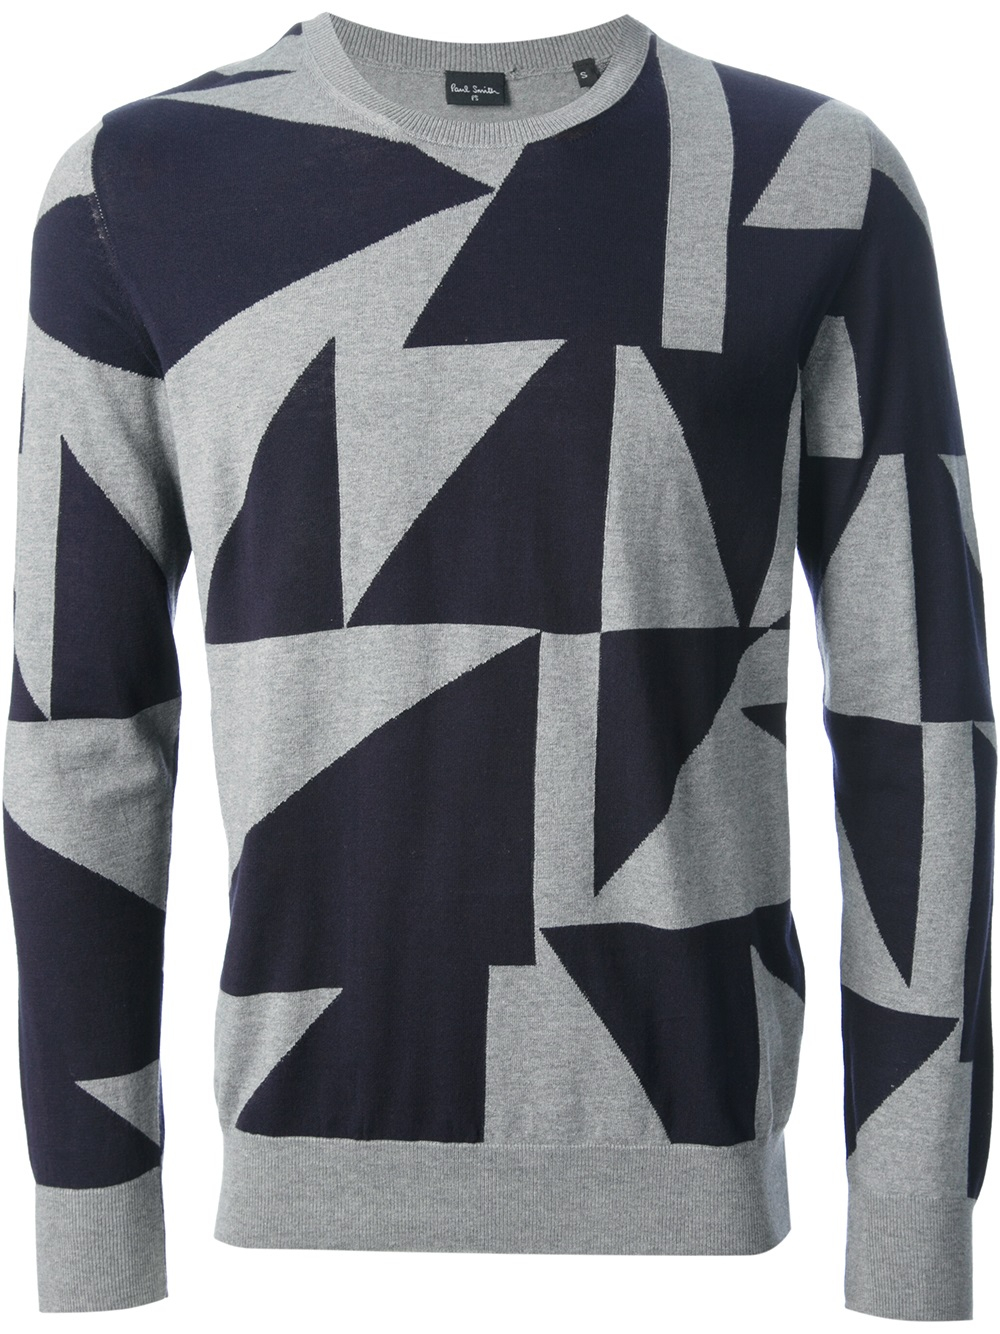 342bfc7d4c PS by Paul Smith Geometric Print Sweater in Gray for Men - Lyst